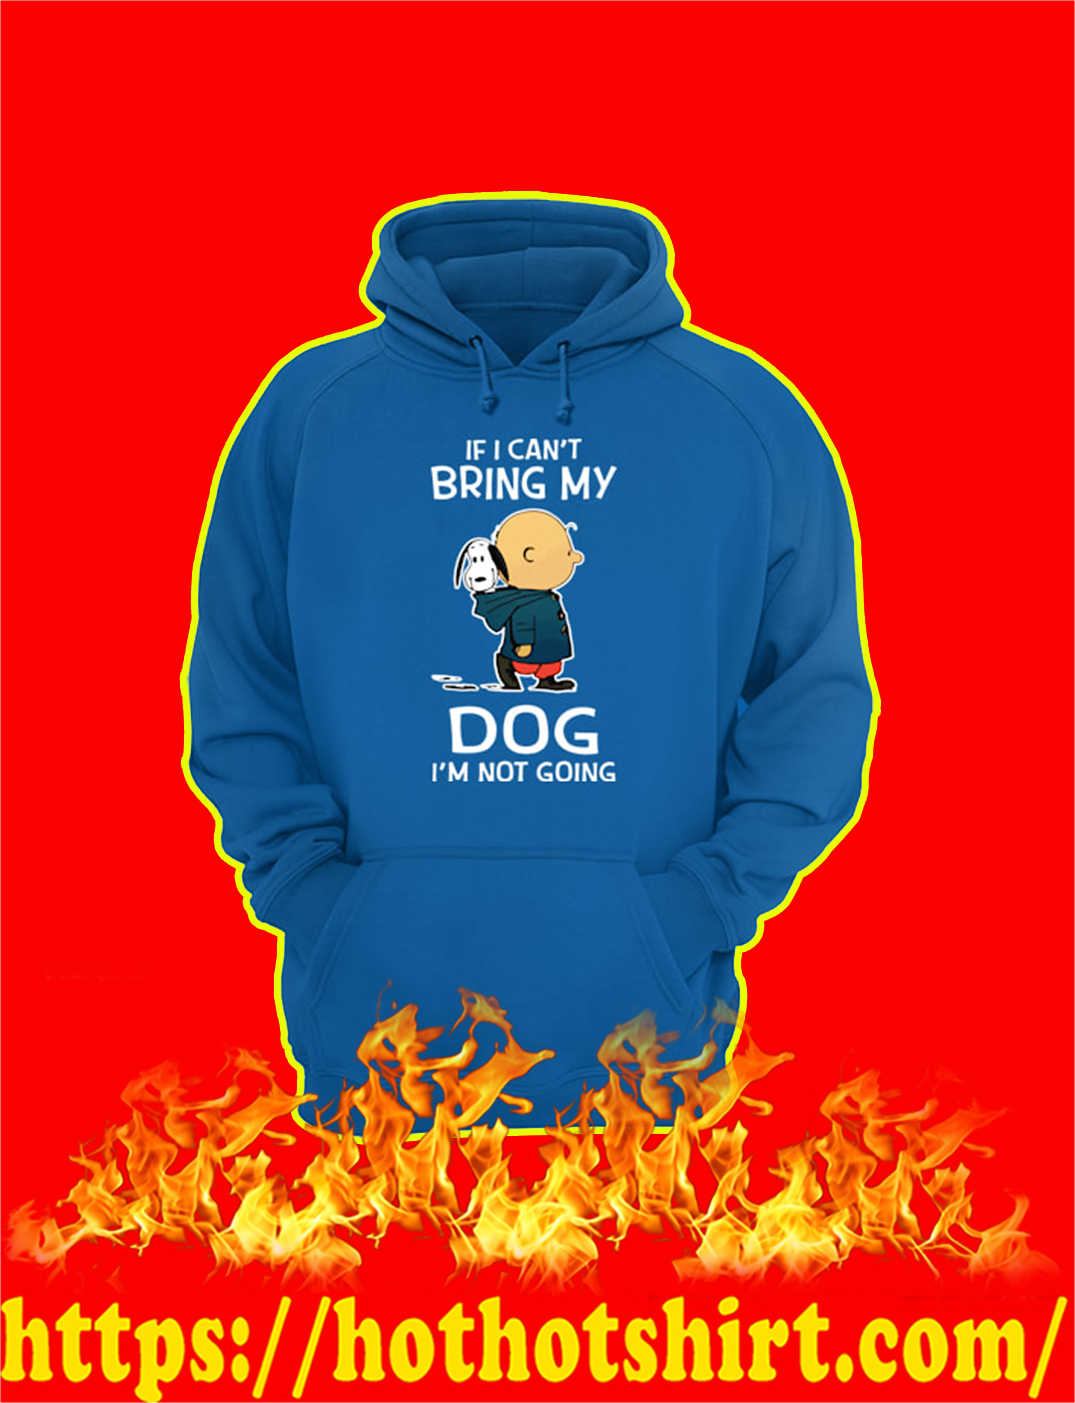 Peanuts If I Can't Bring My Dog I'm Not Going hoodie